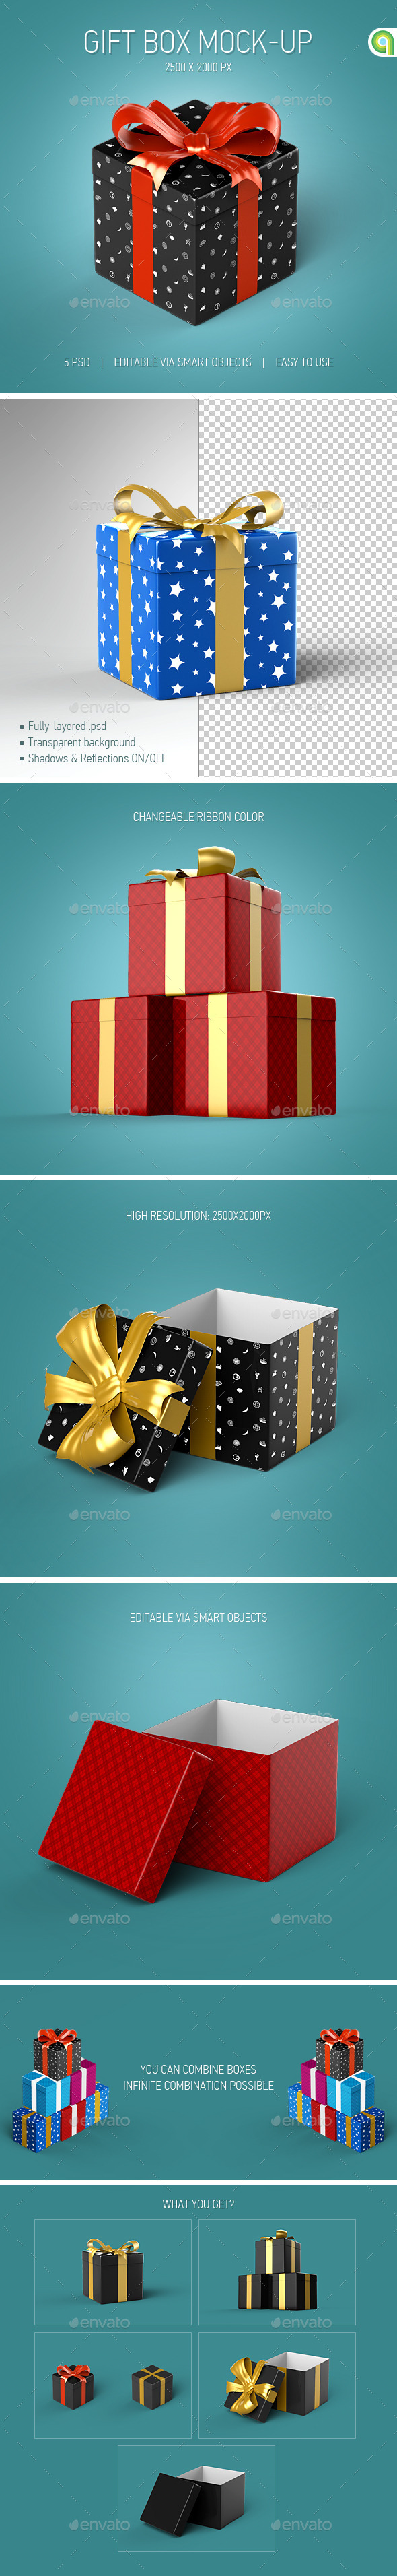 Gift Box Mock-Up